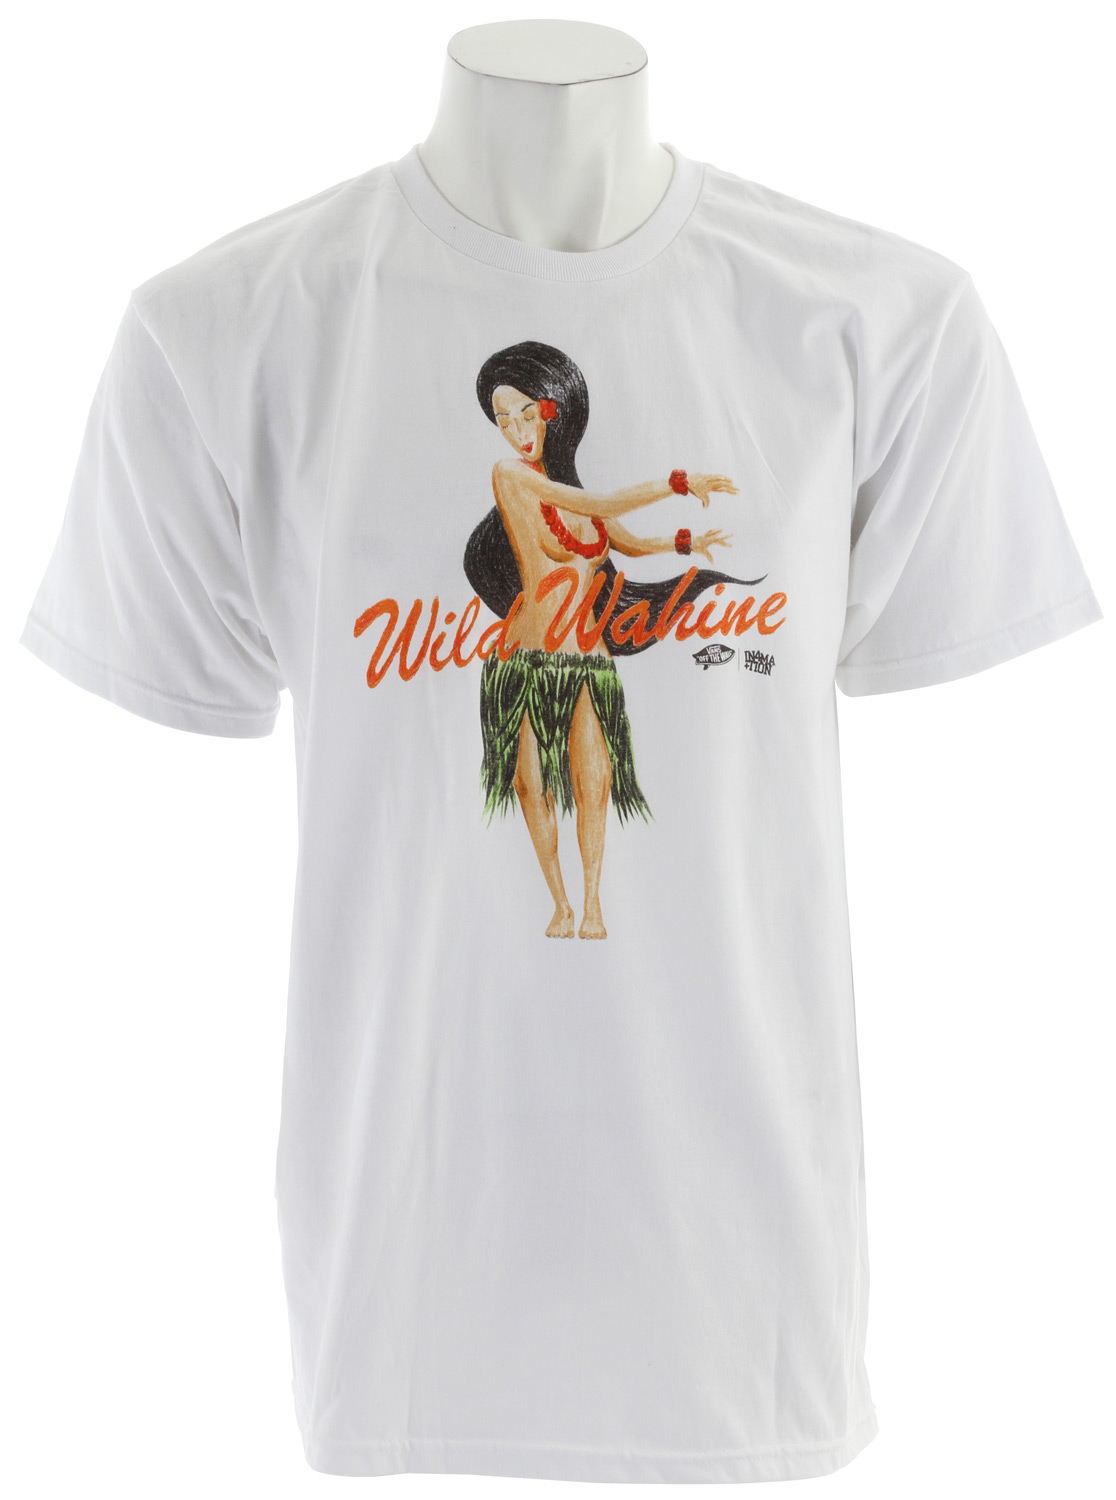 Skateboard Key Features of The Vans X In4Mation Wild Wahine T-Shirt: Regular Fit Crew Neck Short Sleeve 100% Cotton Classic Fit 5.5 oz. ringspun cotton tee shirt. Jumbo front screen print. Clip label on lower back. - $13.95